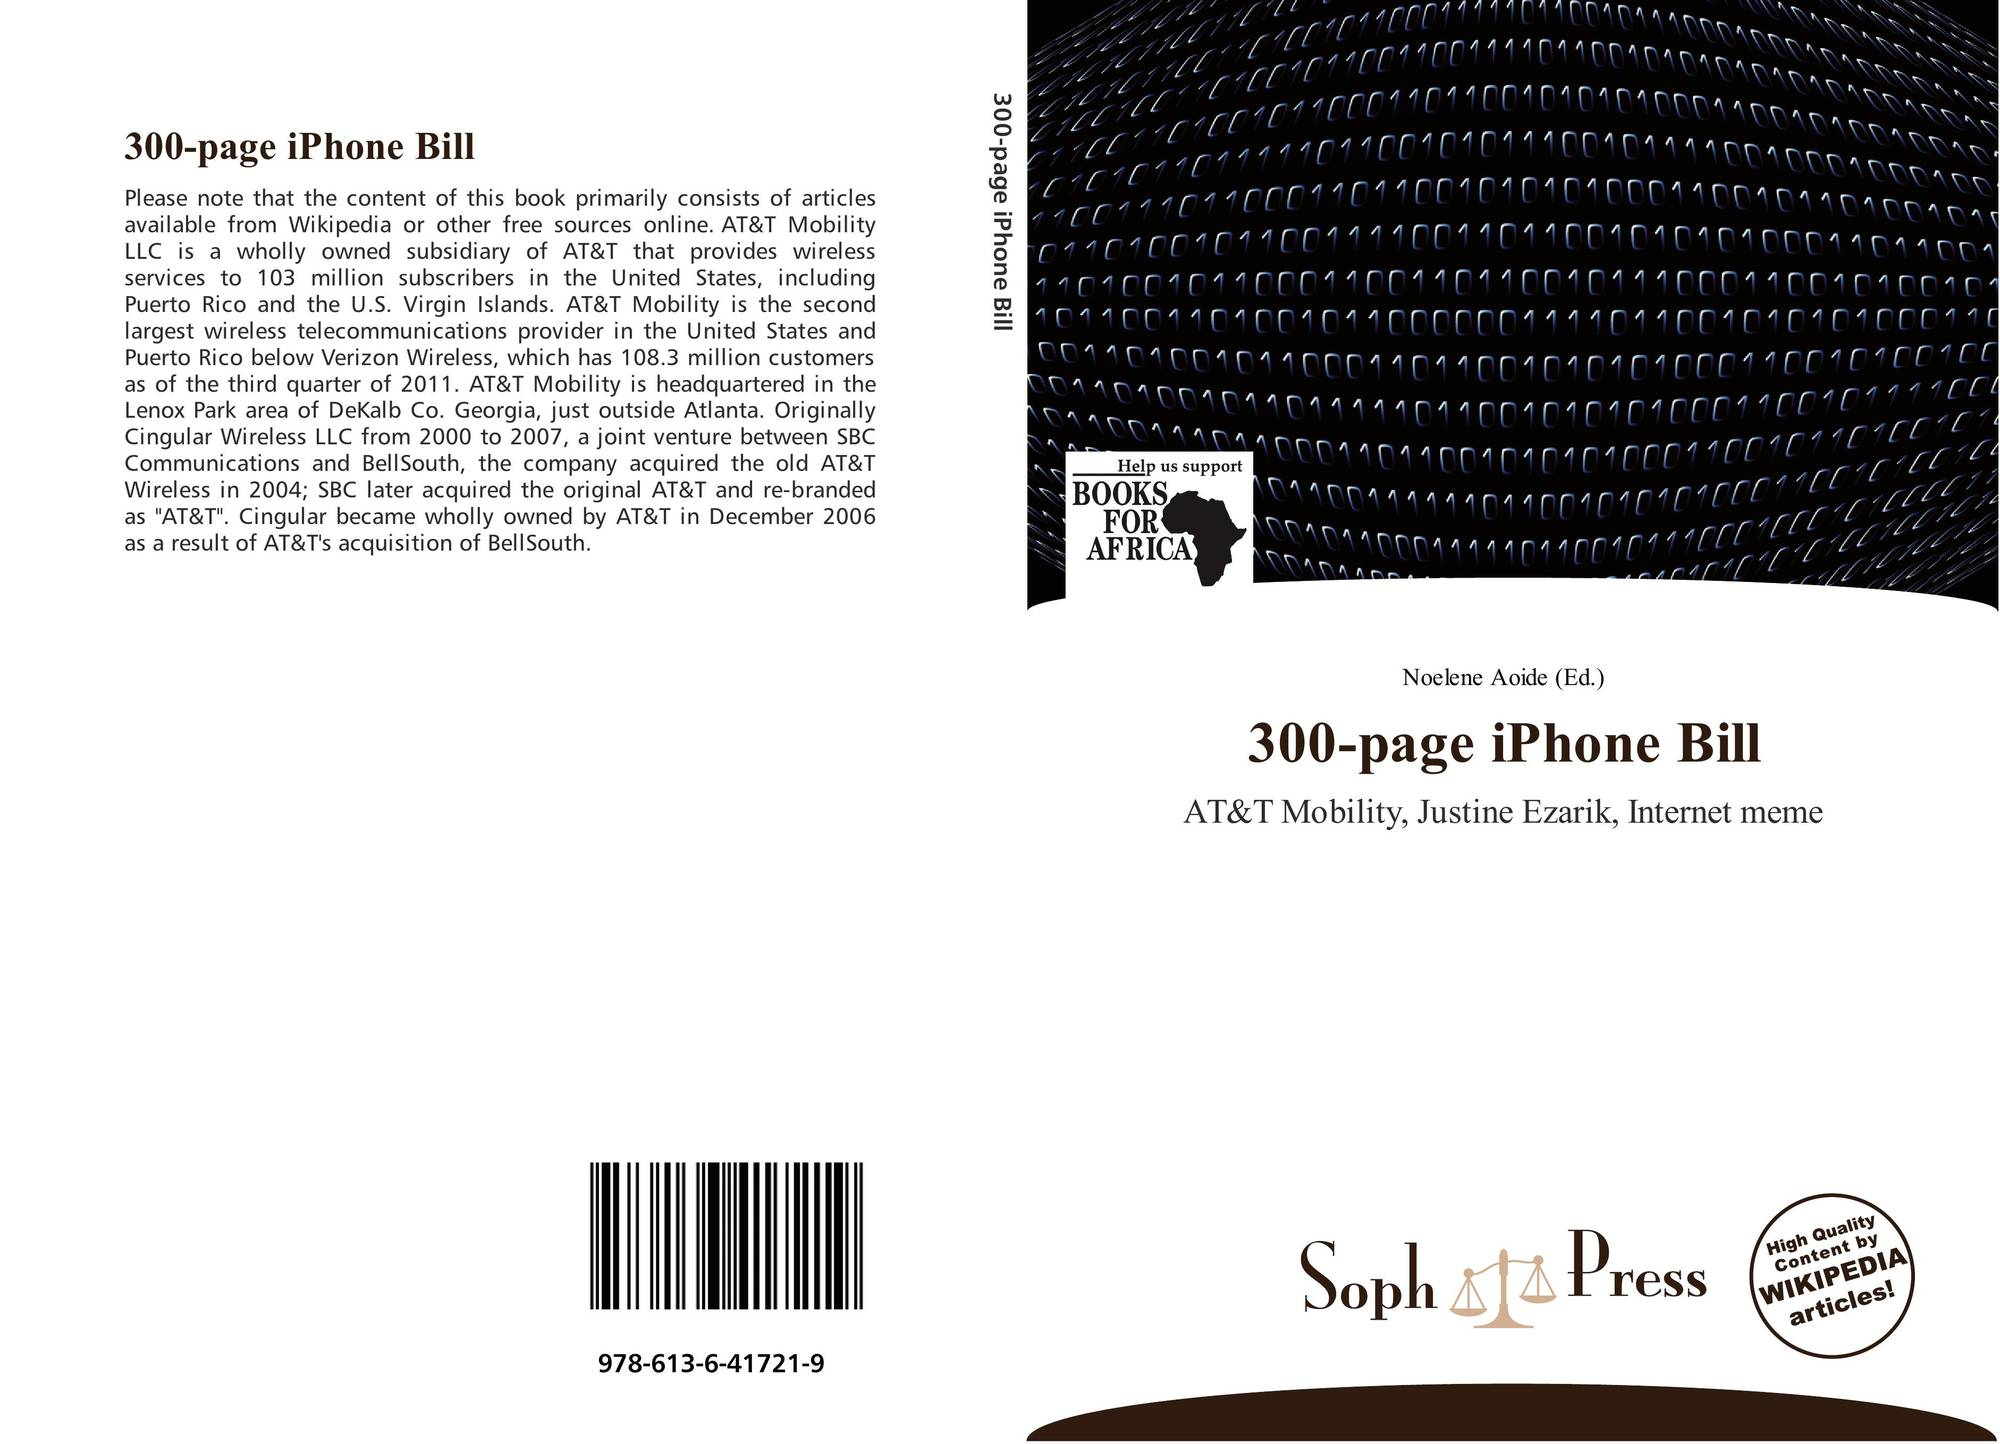 300-page iPhone Bill, 978-613-6-41721-9, 6136417219 ,9786136417219